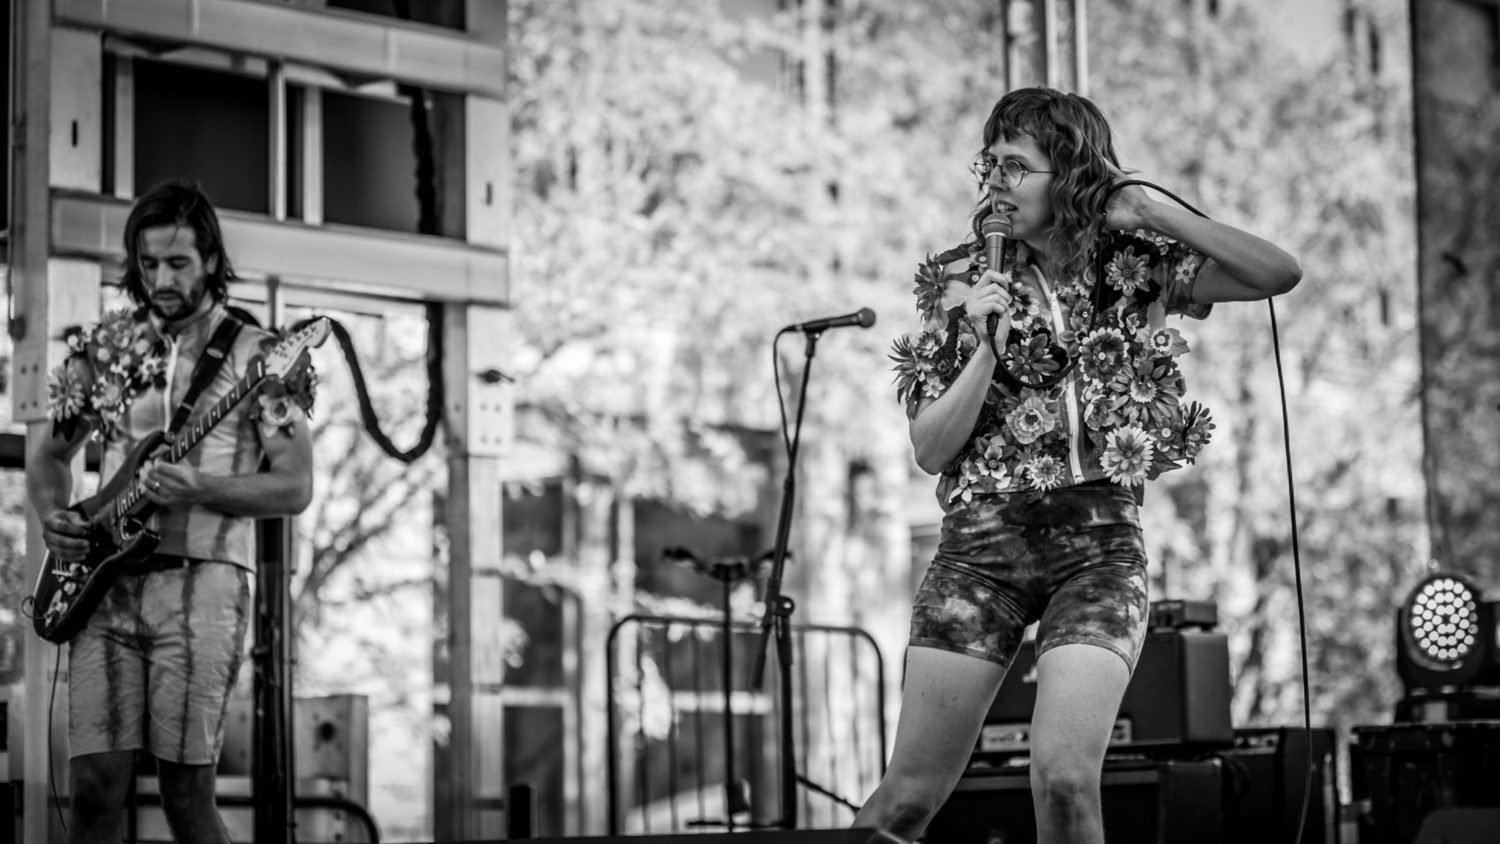 Ramona and the Sometimes performing at 80/35 Music Festival 2018 in Des Moines, Iowa